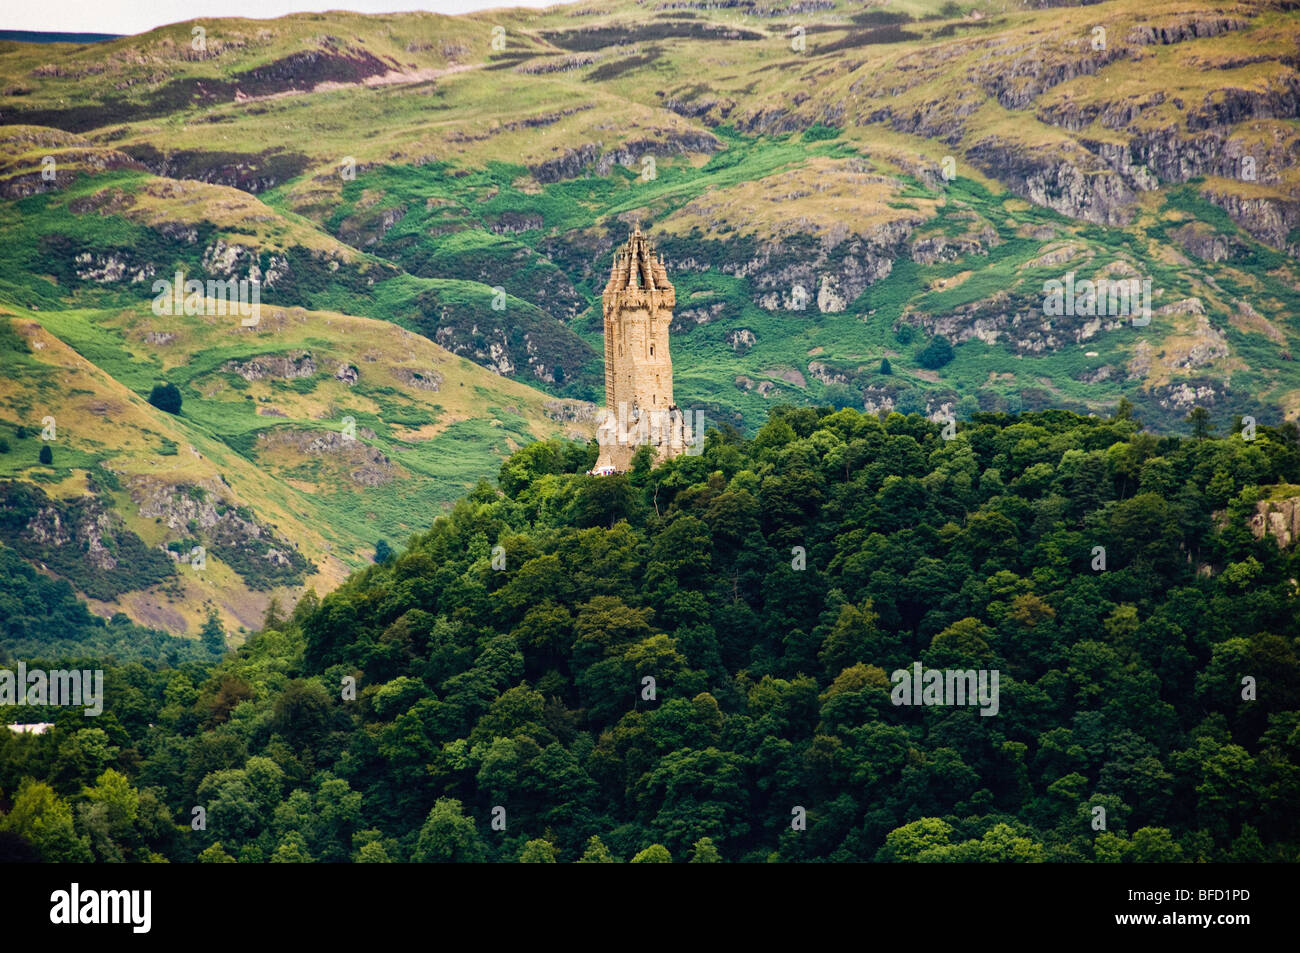 Wallis Monument surrounded by trees - Stock Image